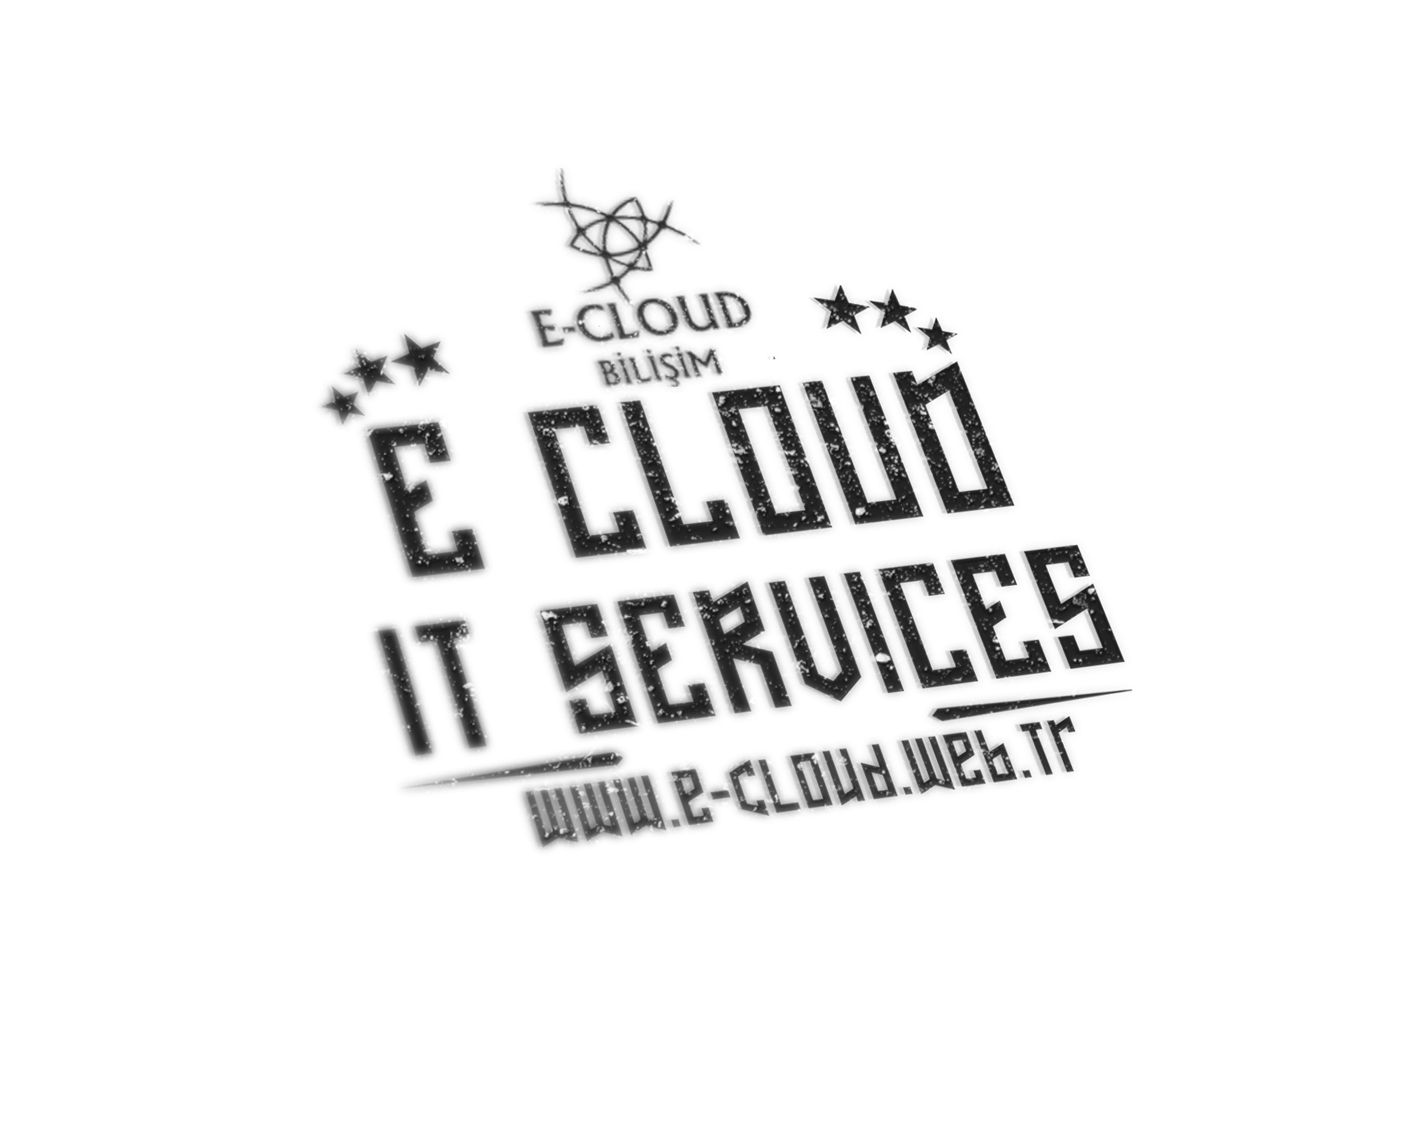 E-CLOUD Graphic